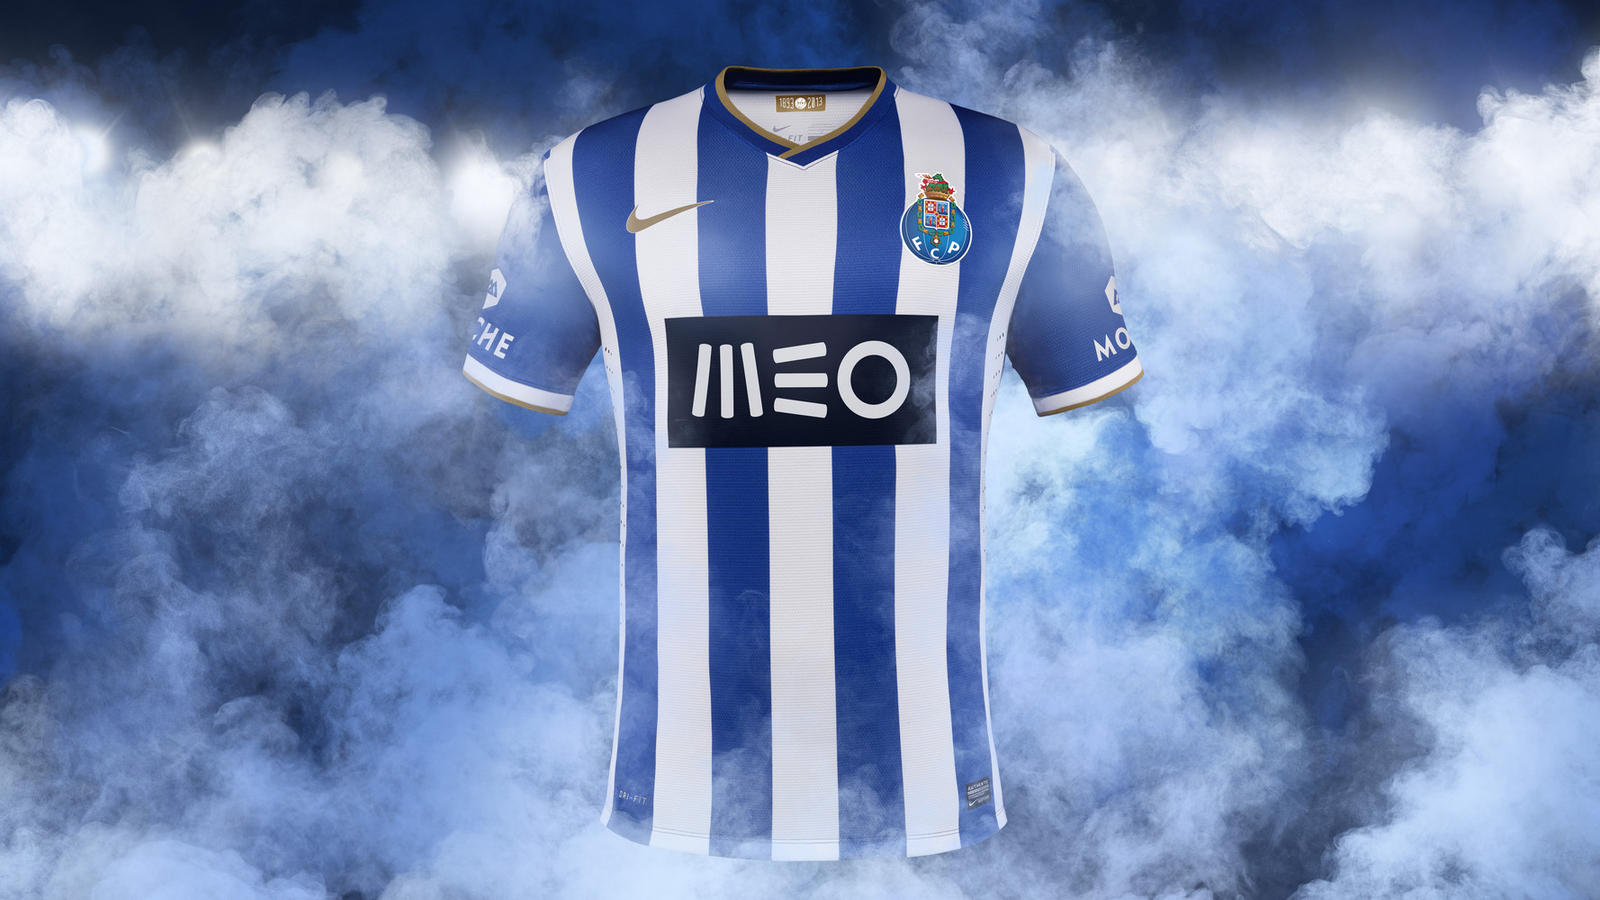 a1337c75274bc su13_fb_clubkit_porto_home_jersey_rgb. Fa Su13 Fb Stadium Porto Home Crest  C. fa_su13_fb_stadium_porto_home_neck_outside_c